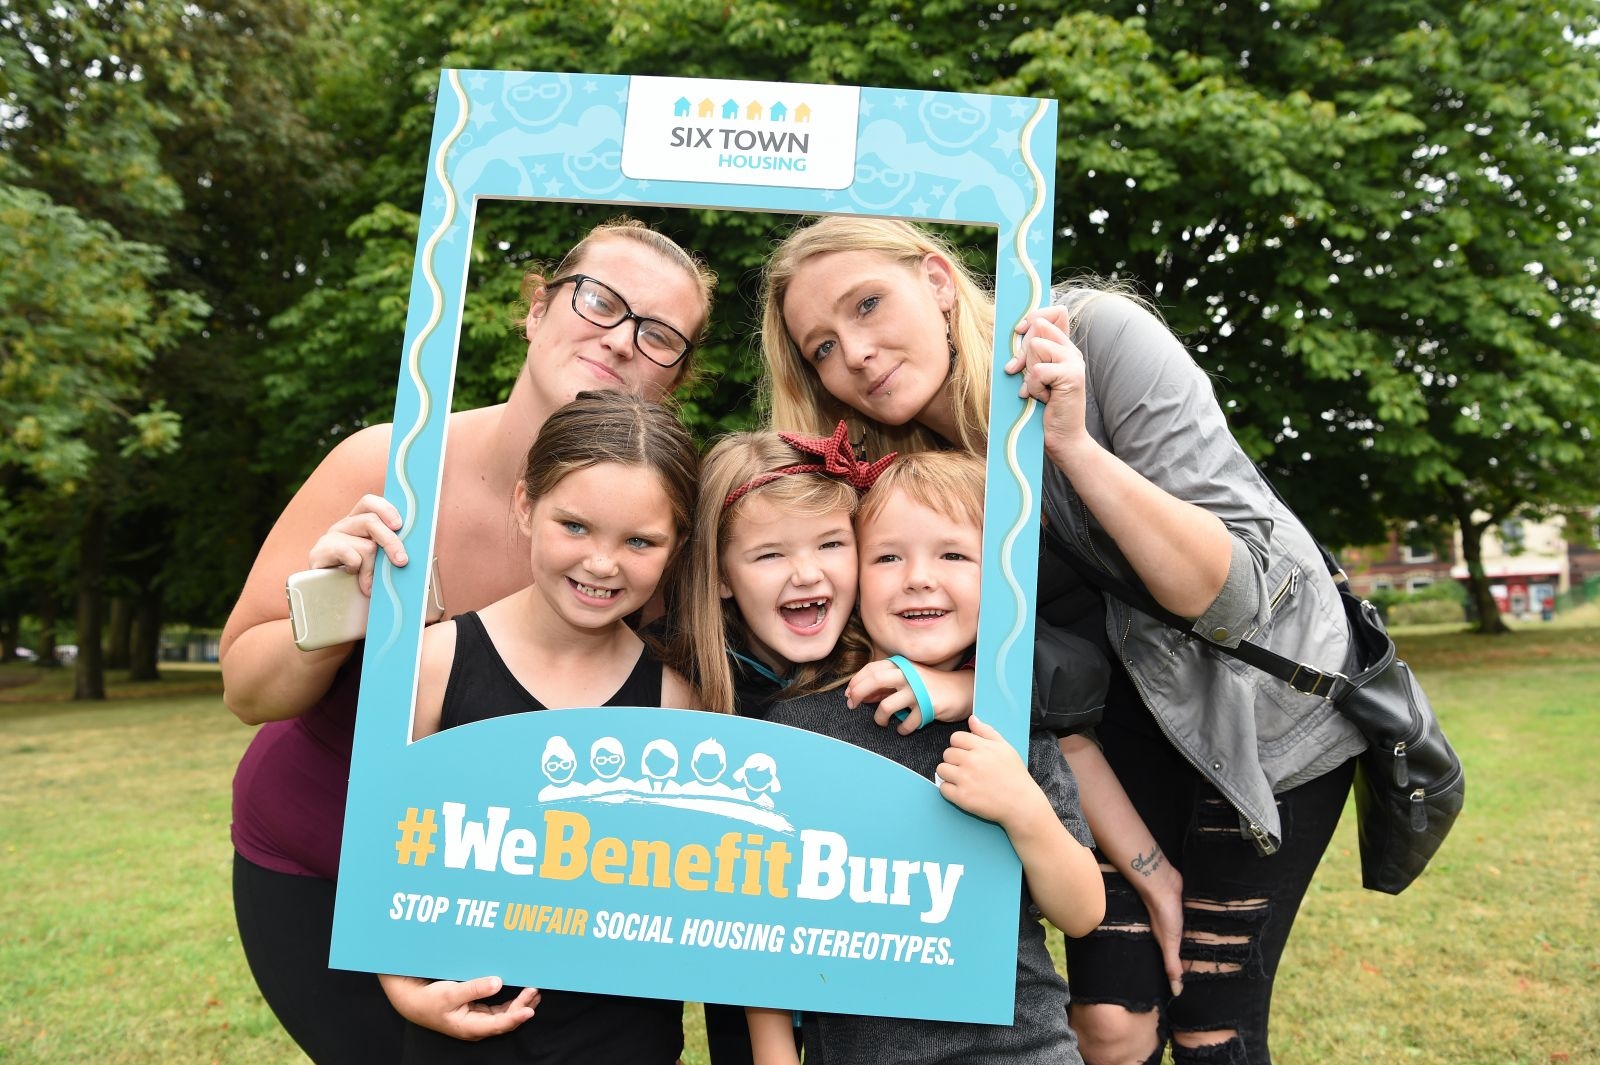 Tenants pose for a #WeBenefitBury selfie at Six Town Housing's Summer Roadshow; Amy Leighton with Kayla Alder (7), Lexie (7), Luca (5) and Melissa Peters